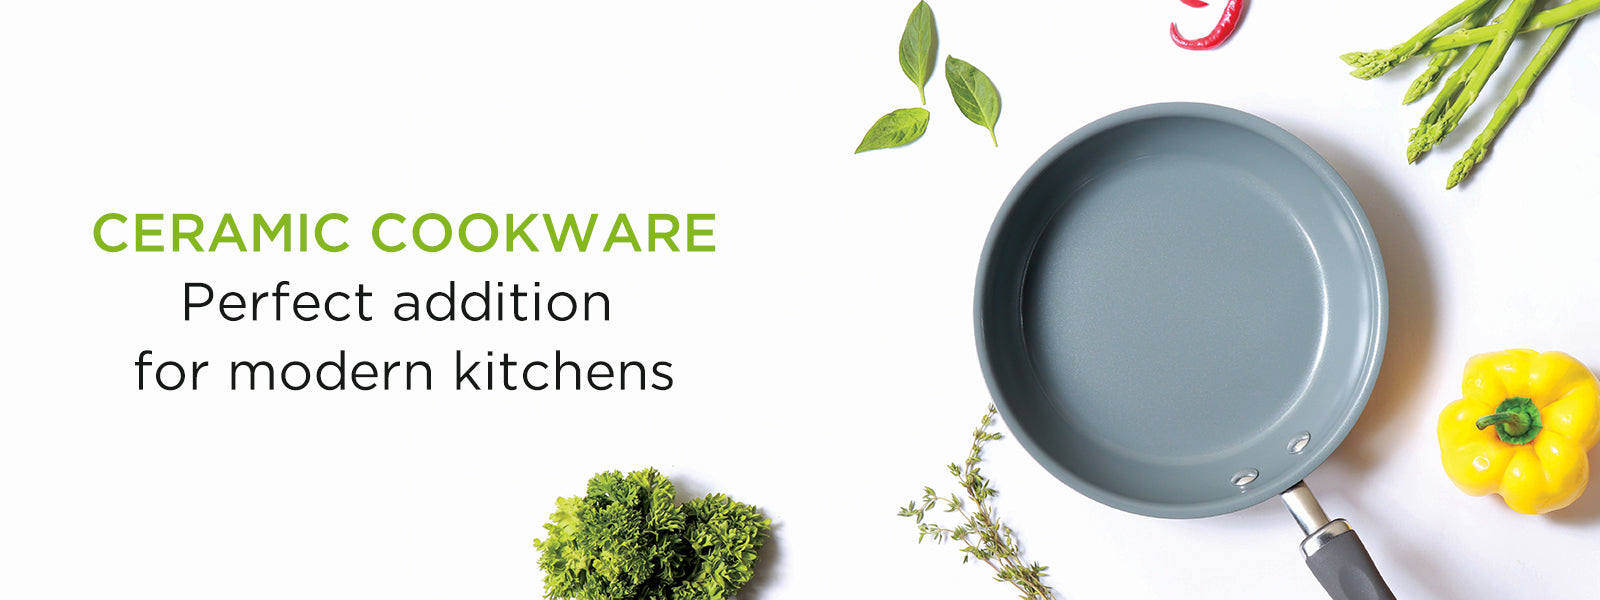 Ceramic cookware – worth the buy?  Here's exploring the surprising benefits of cooking in Ceramic Cookware